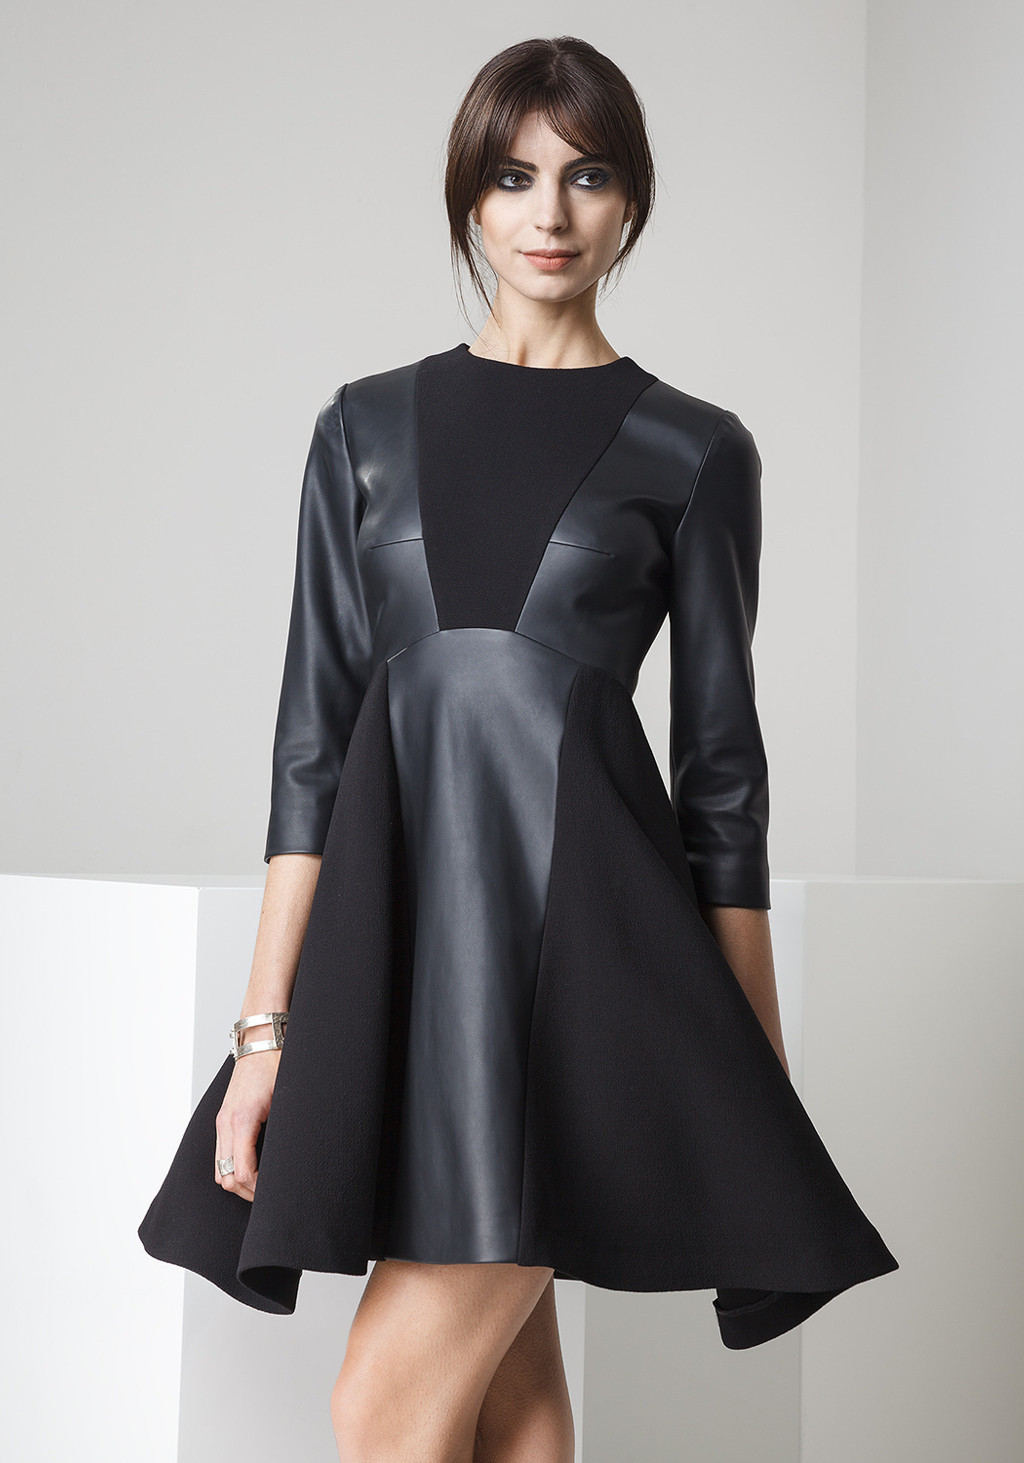 Double crepe and leather dress